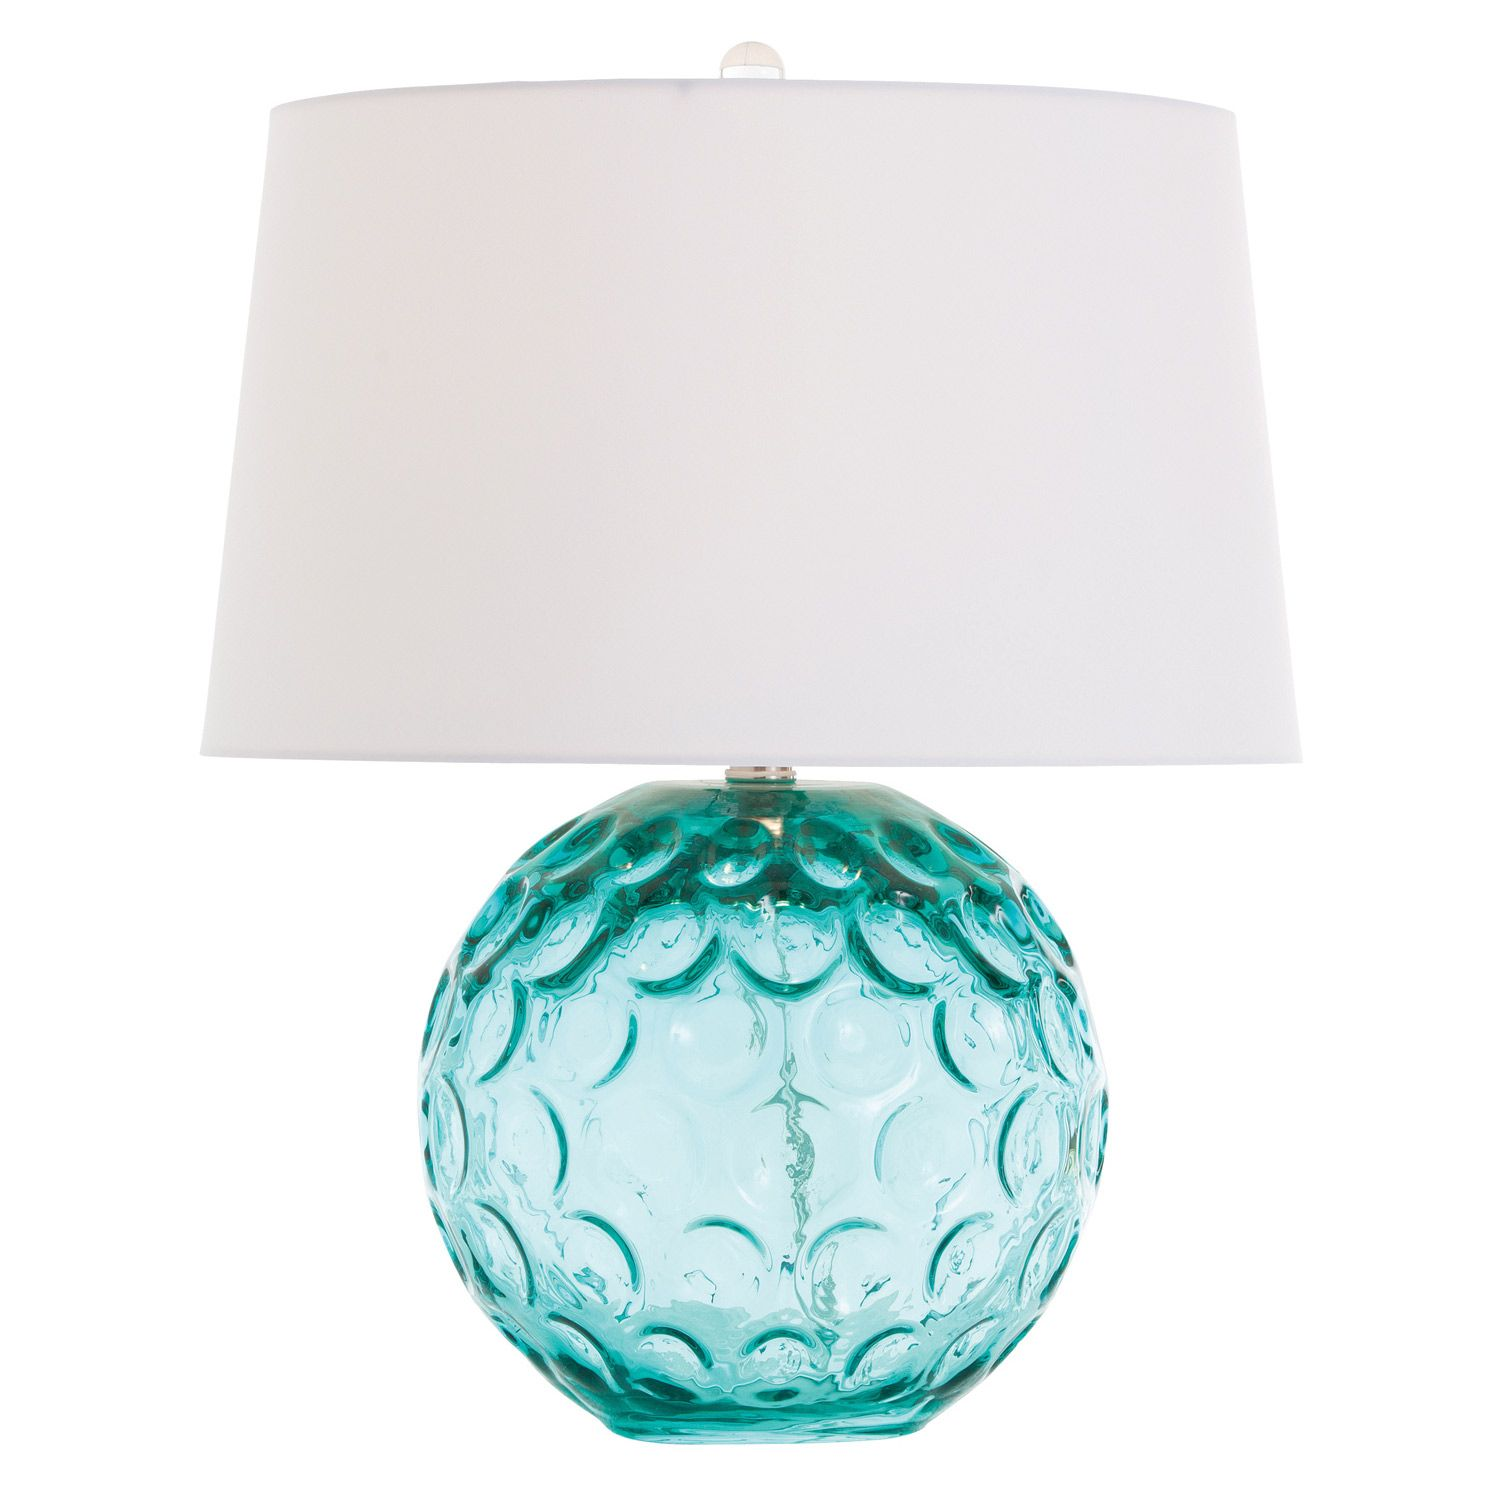 Arteriors Caprice Aqua Glass Lamp Zinc Door Renovation Resources